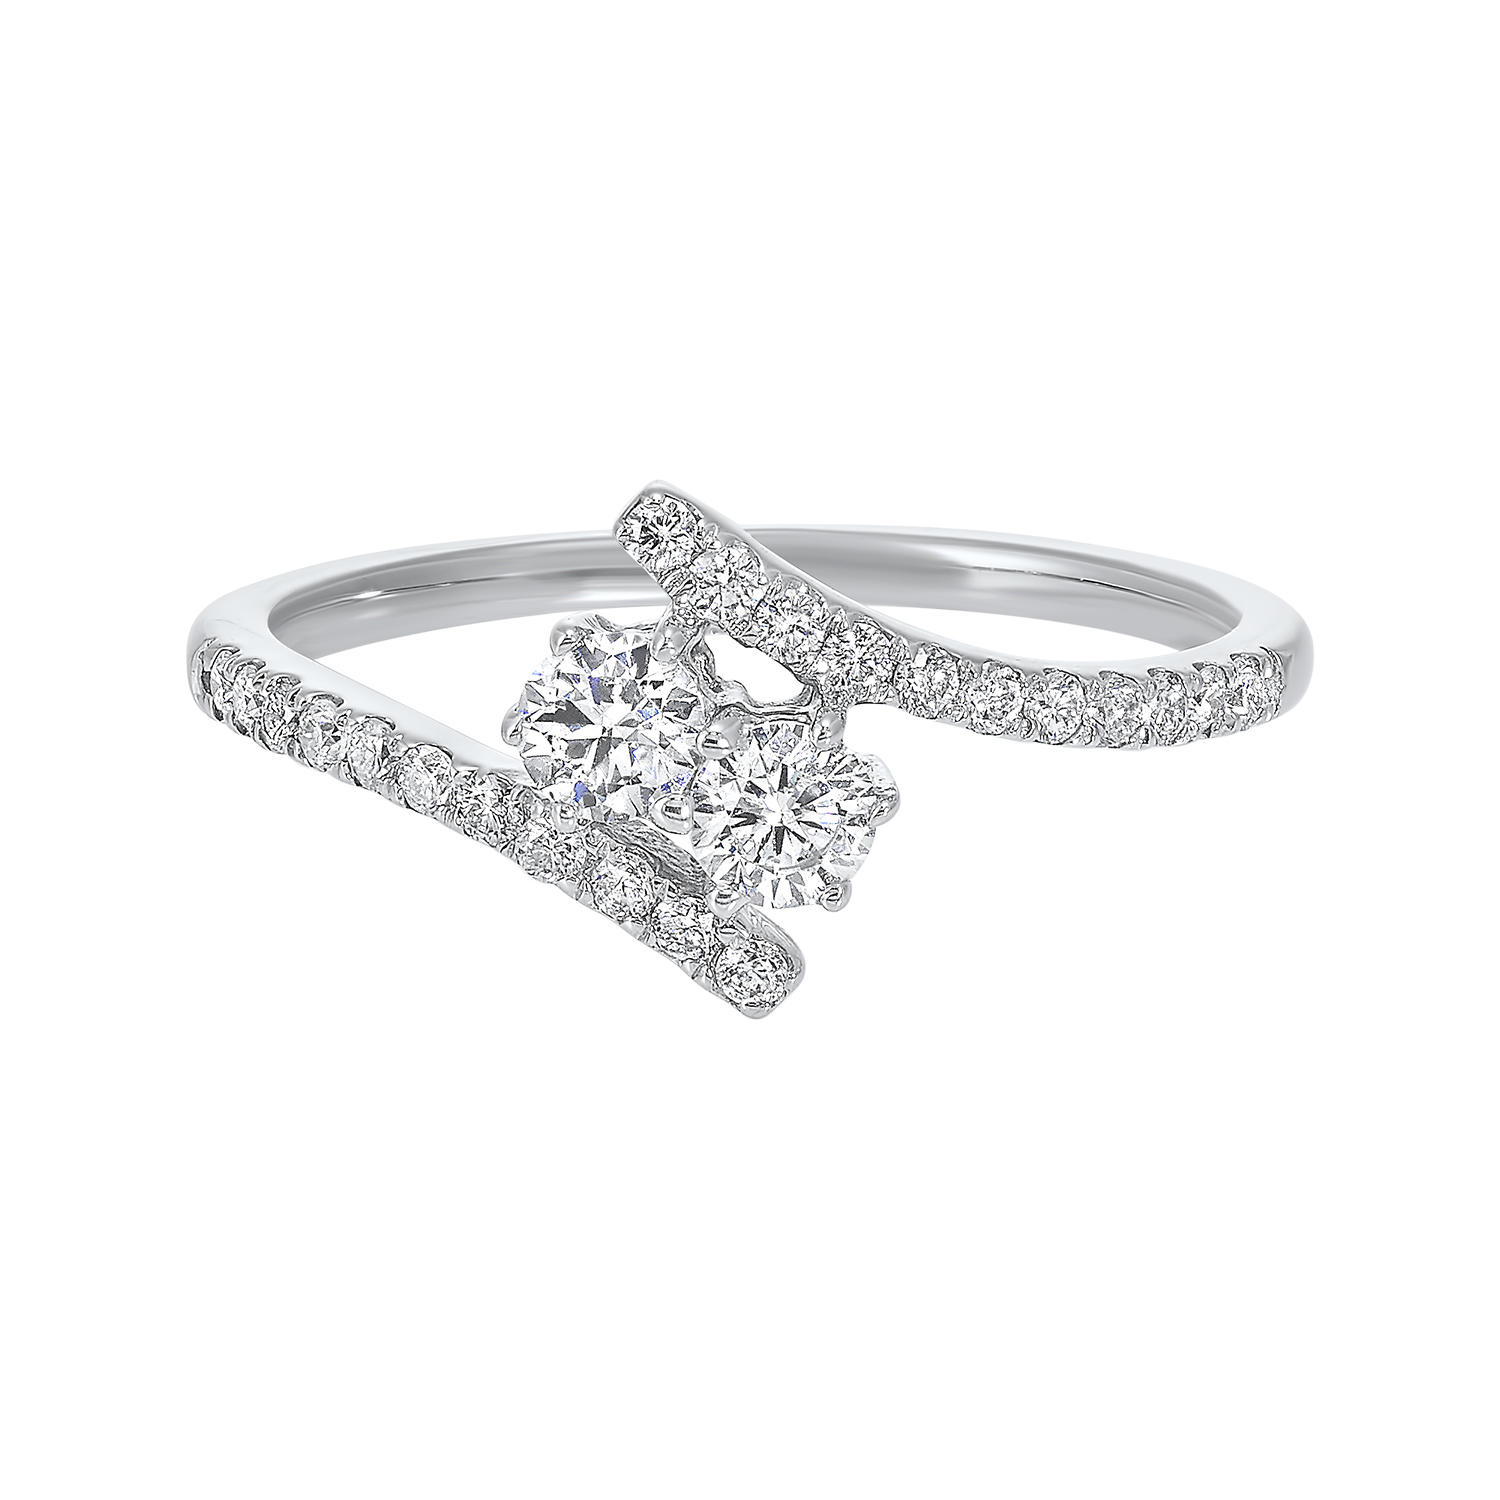 Twogether Two Stone Diamond Ring in 14K White Gold (1/2 ct. tw.) Moseley Diamond Showcase Inc Columbia, SC